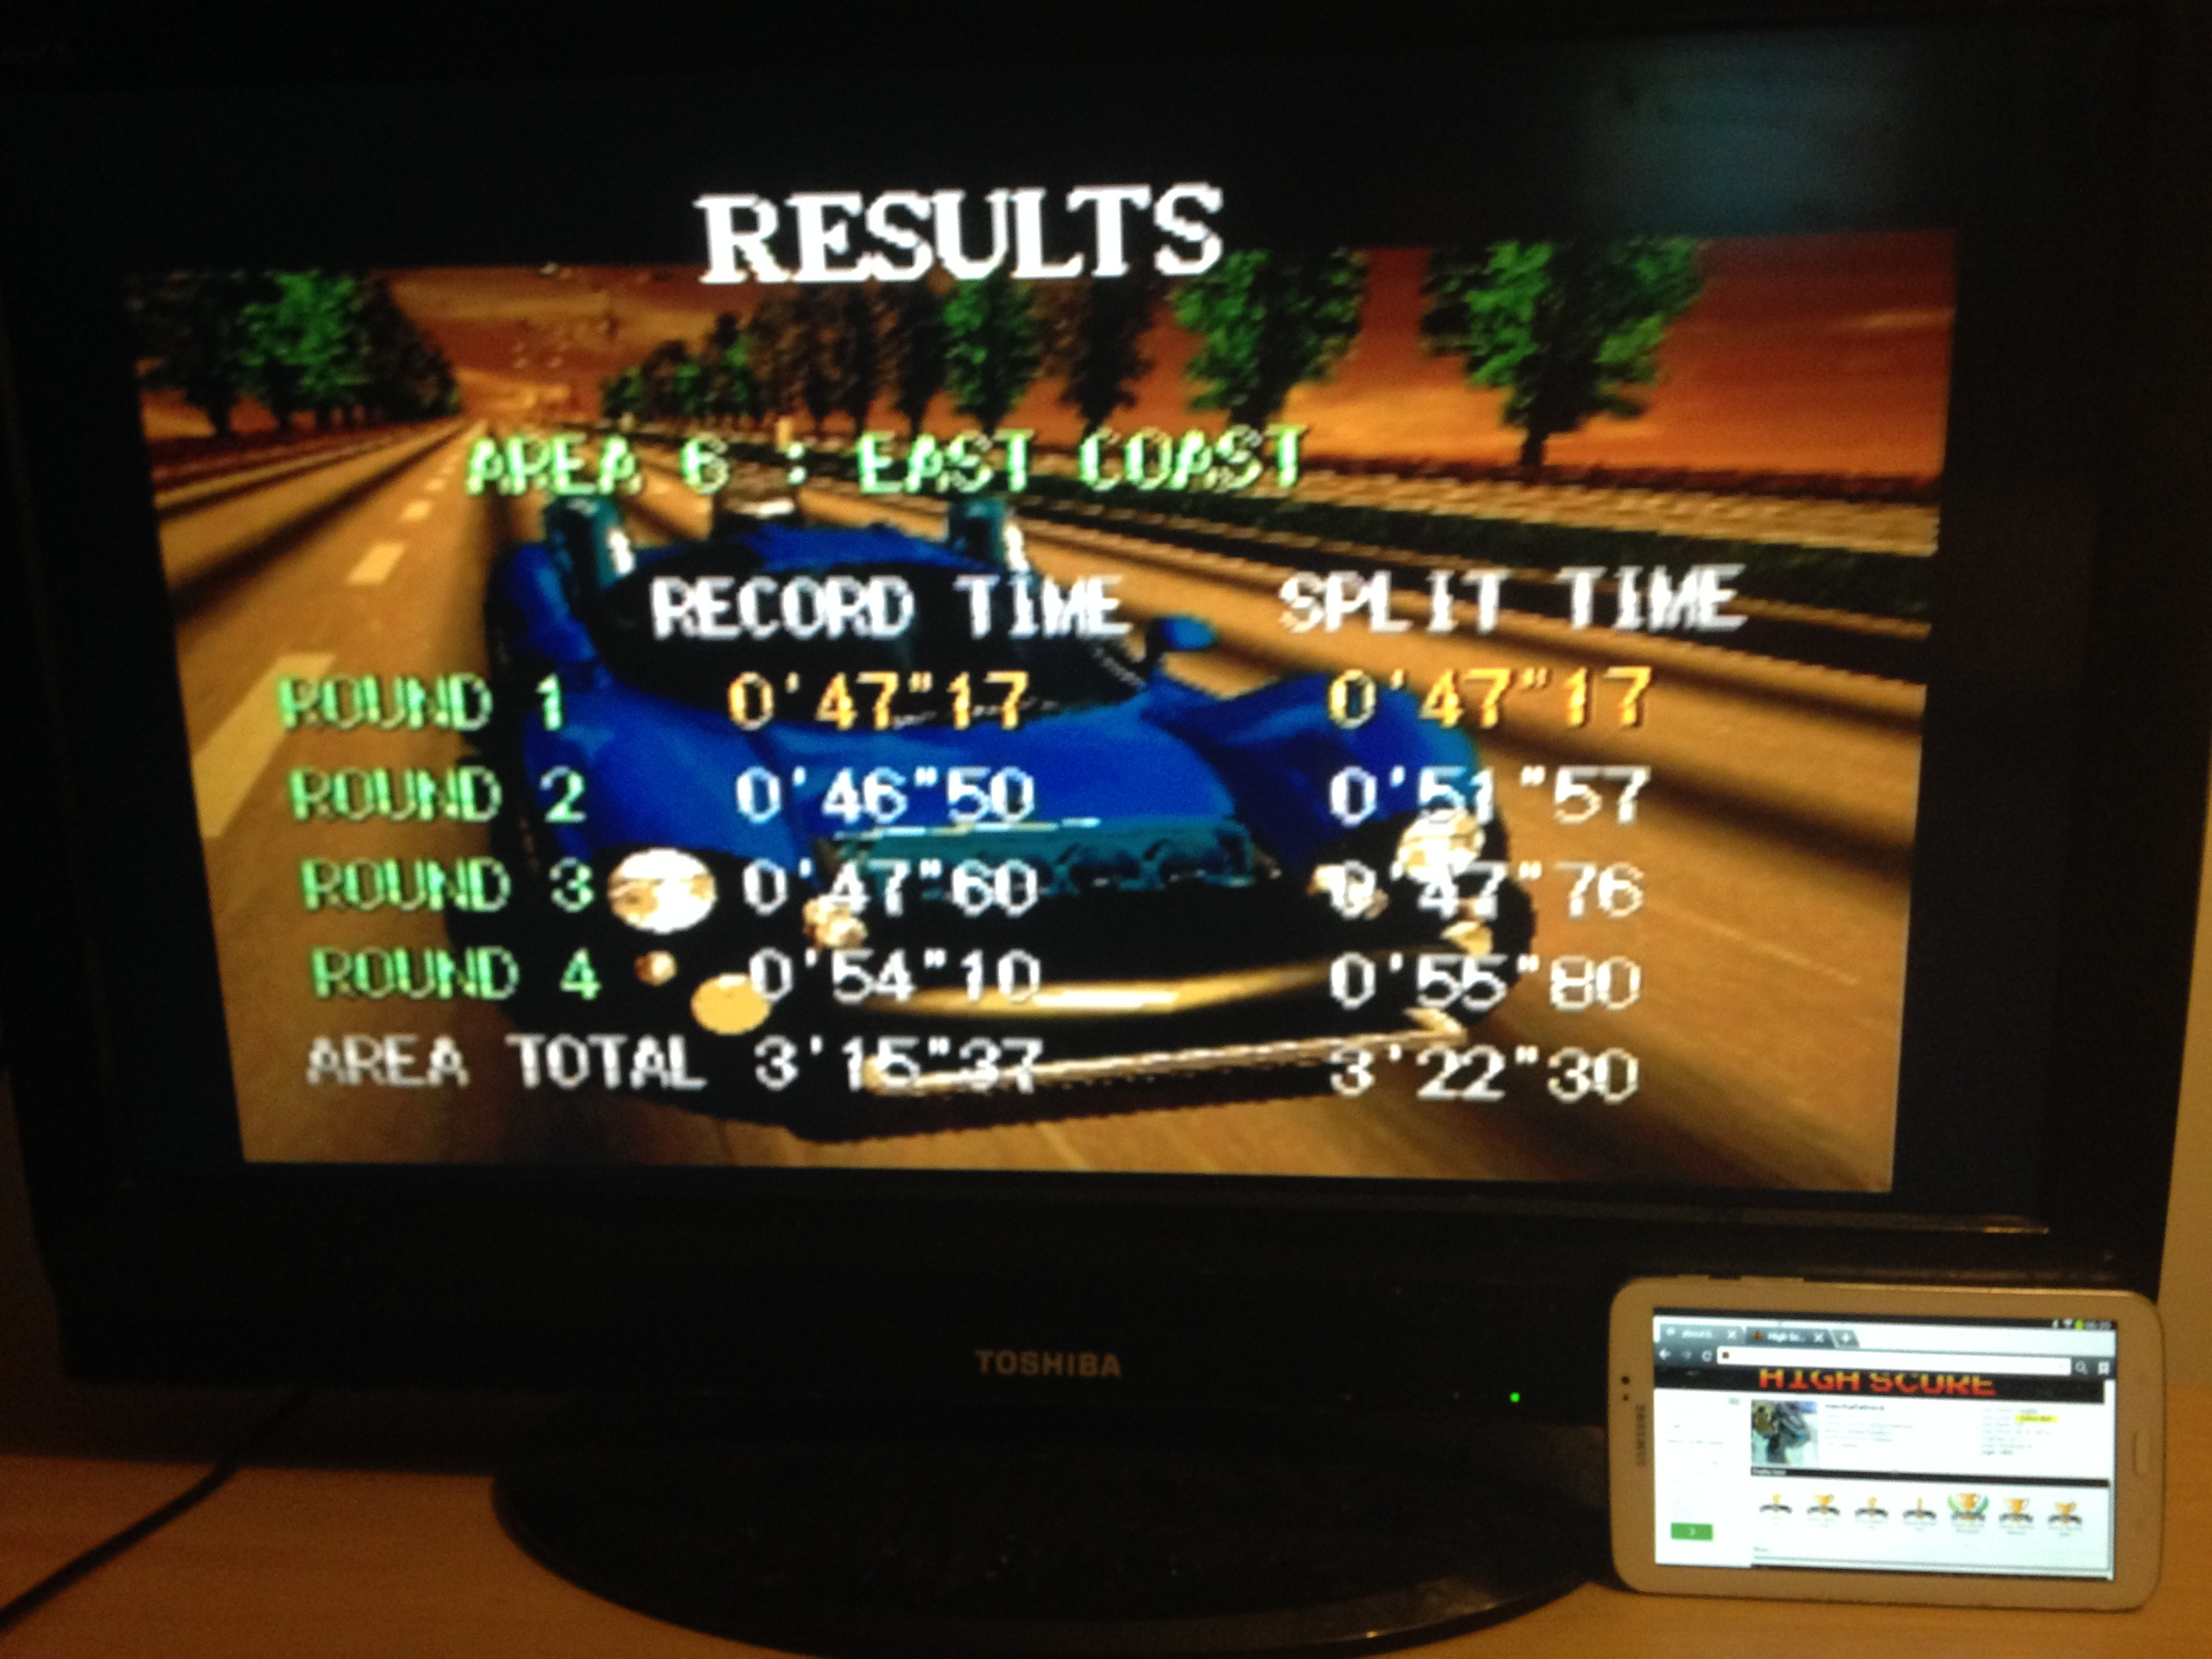 Gale Racer: Time Attack Area 6 time of 0:03:22.3